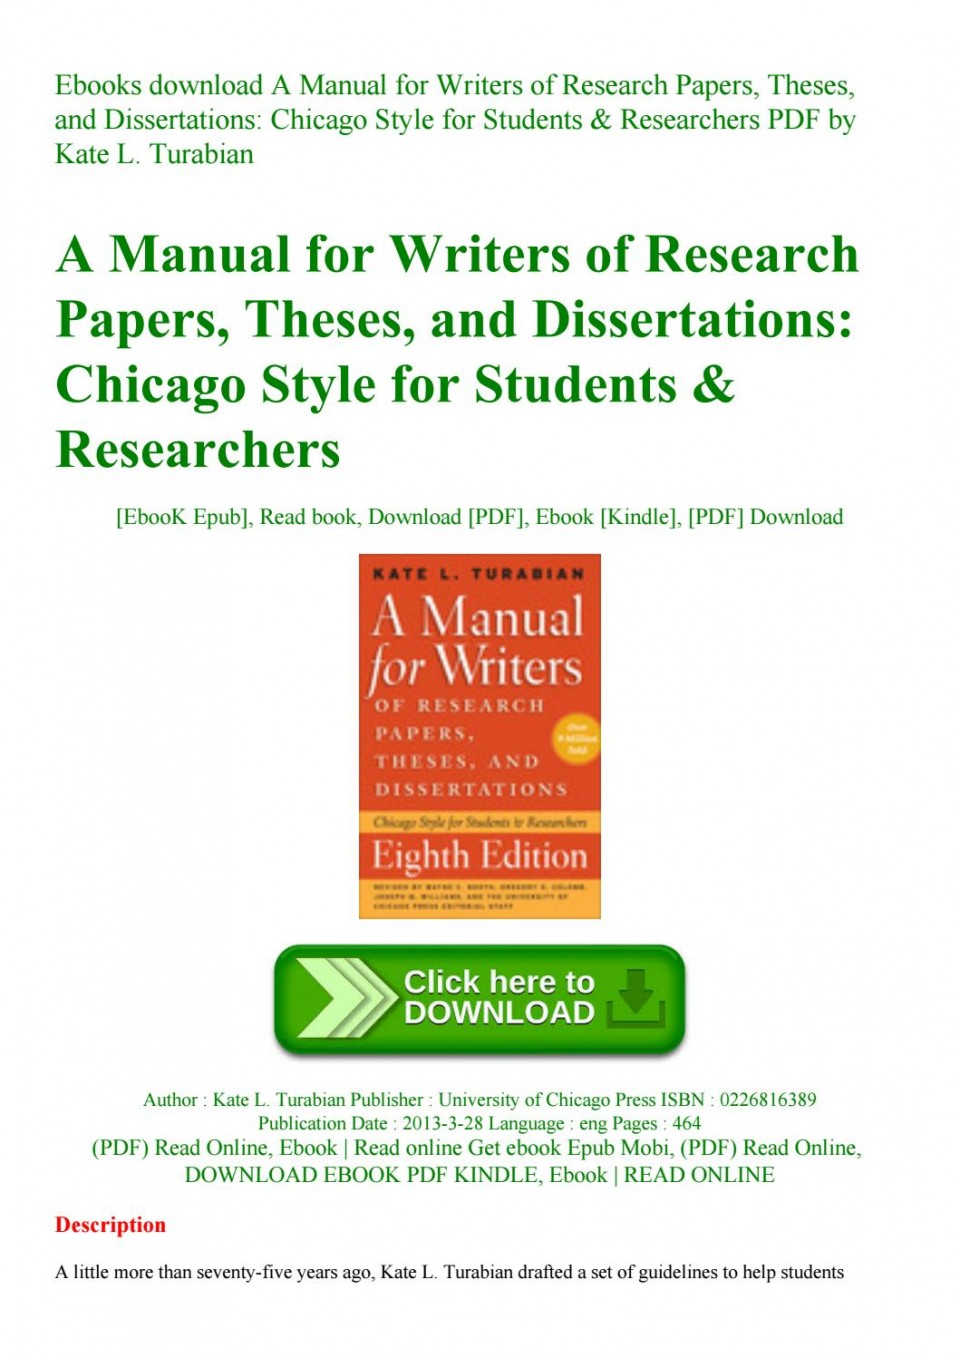 006 Manual For Writers Of Researchs Theses And Dissertations Turabian Page 1 Amazing A Research Papers Pdf 960